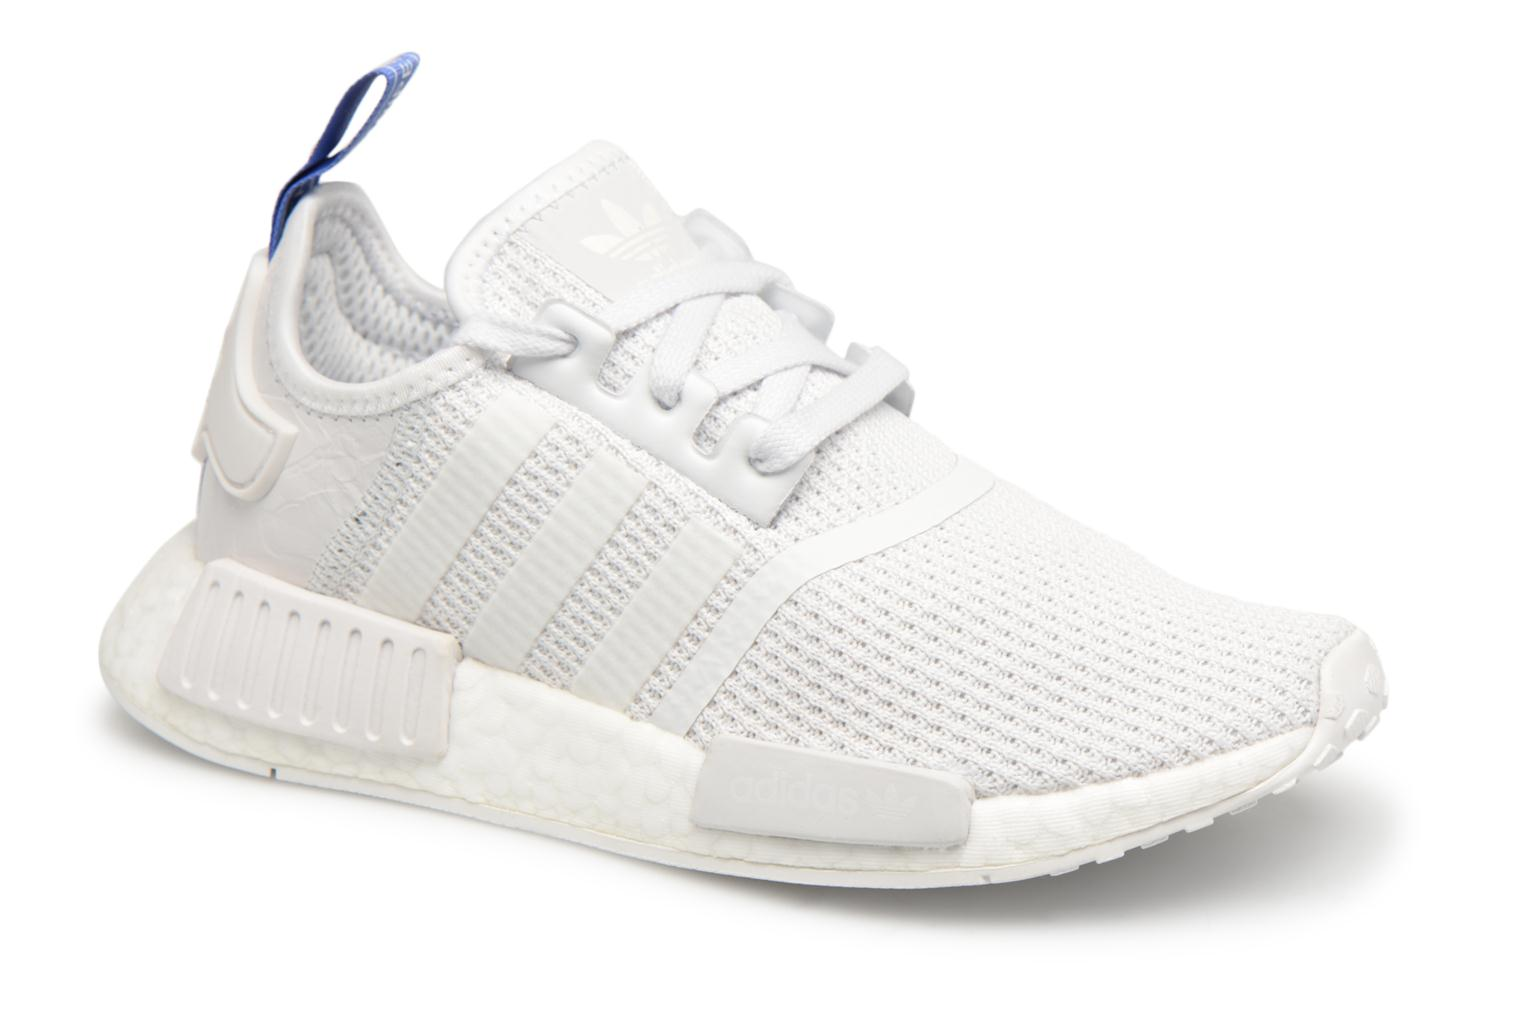 048807909241d R1 real white white Nmd crystal W lilac crystal Originals Adidas Ea1Hqgpa  ...